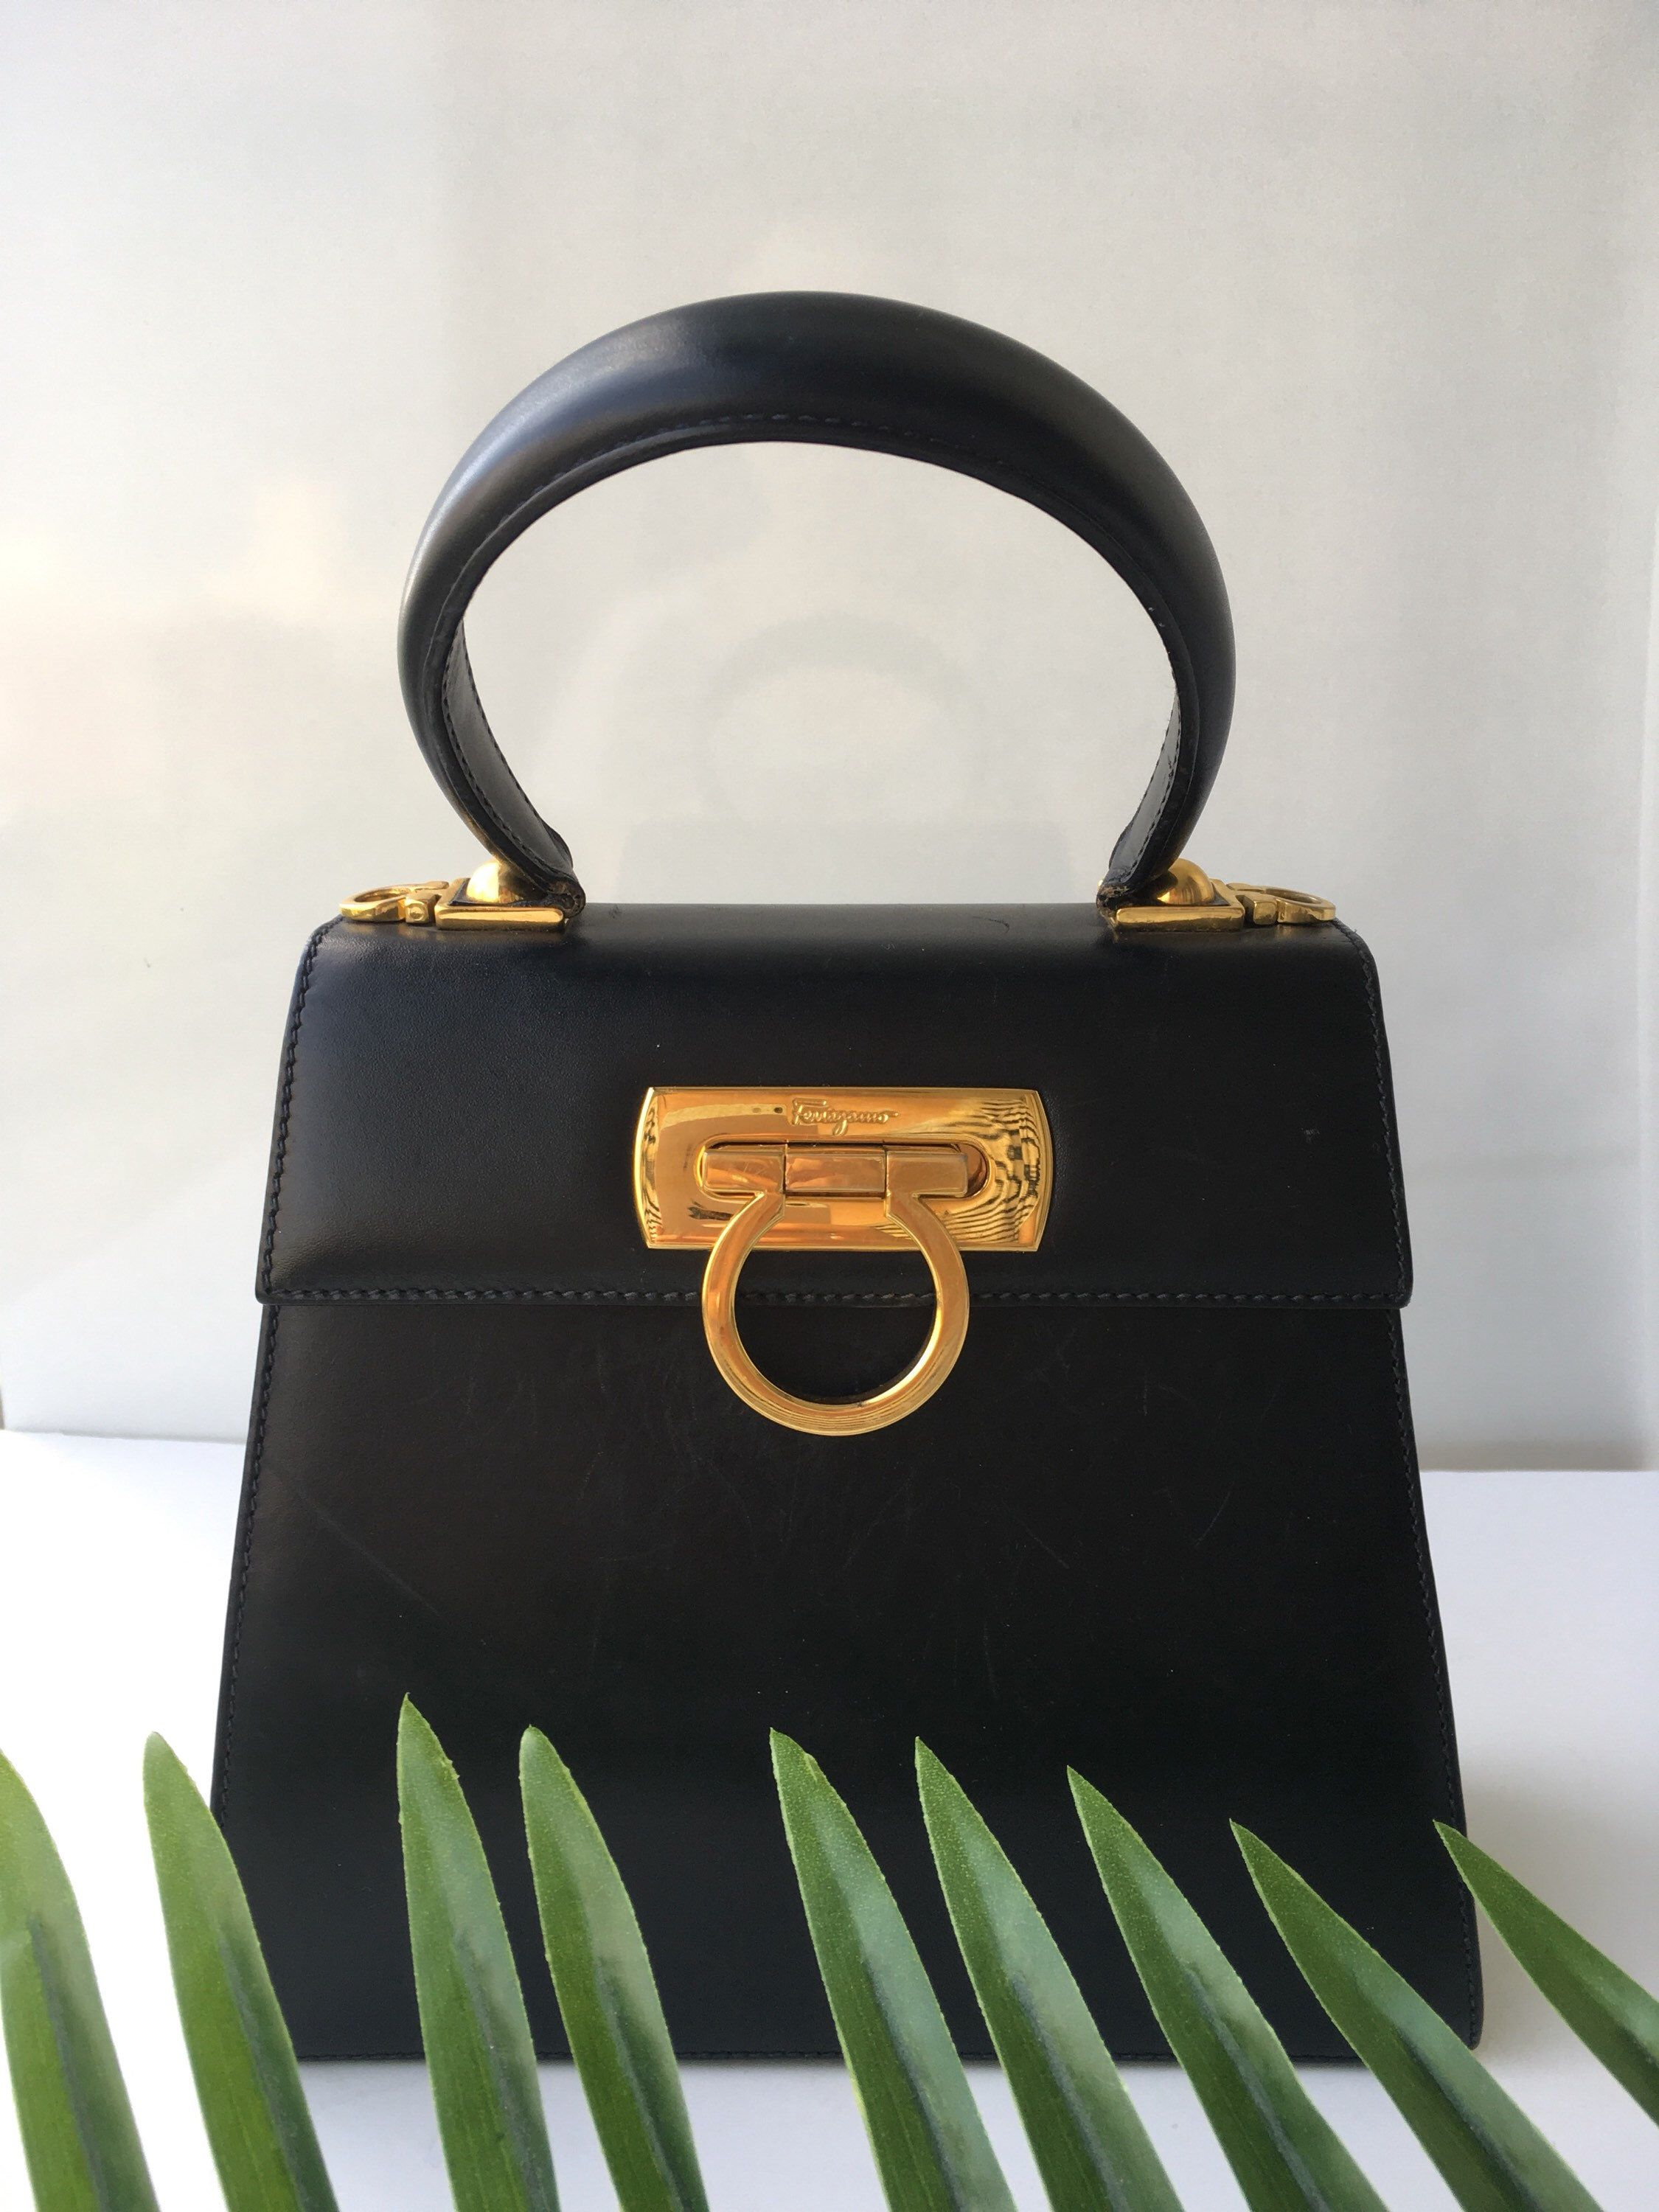 b0f6741f451f Excited to share this item from my  etsy shop  Salvatore Ferragamo Gancini  Mini Tote Kelly Style Authentic Vintage  authenticferragamo